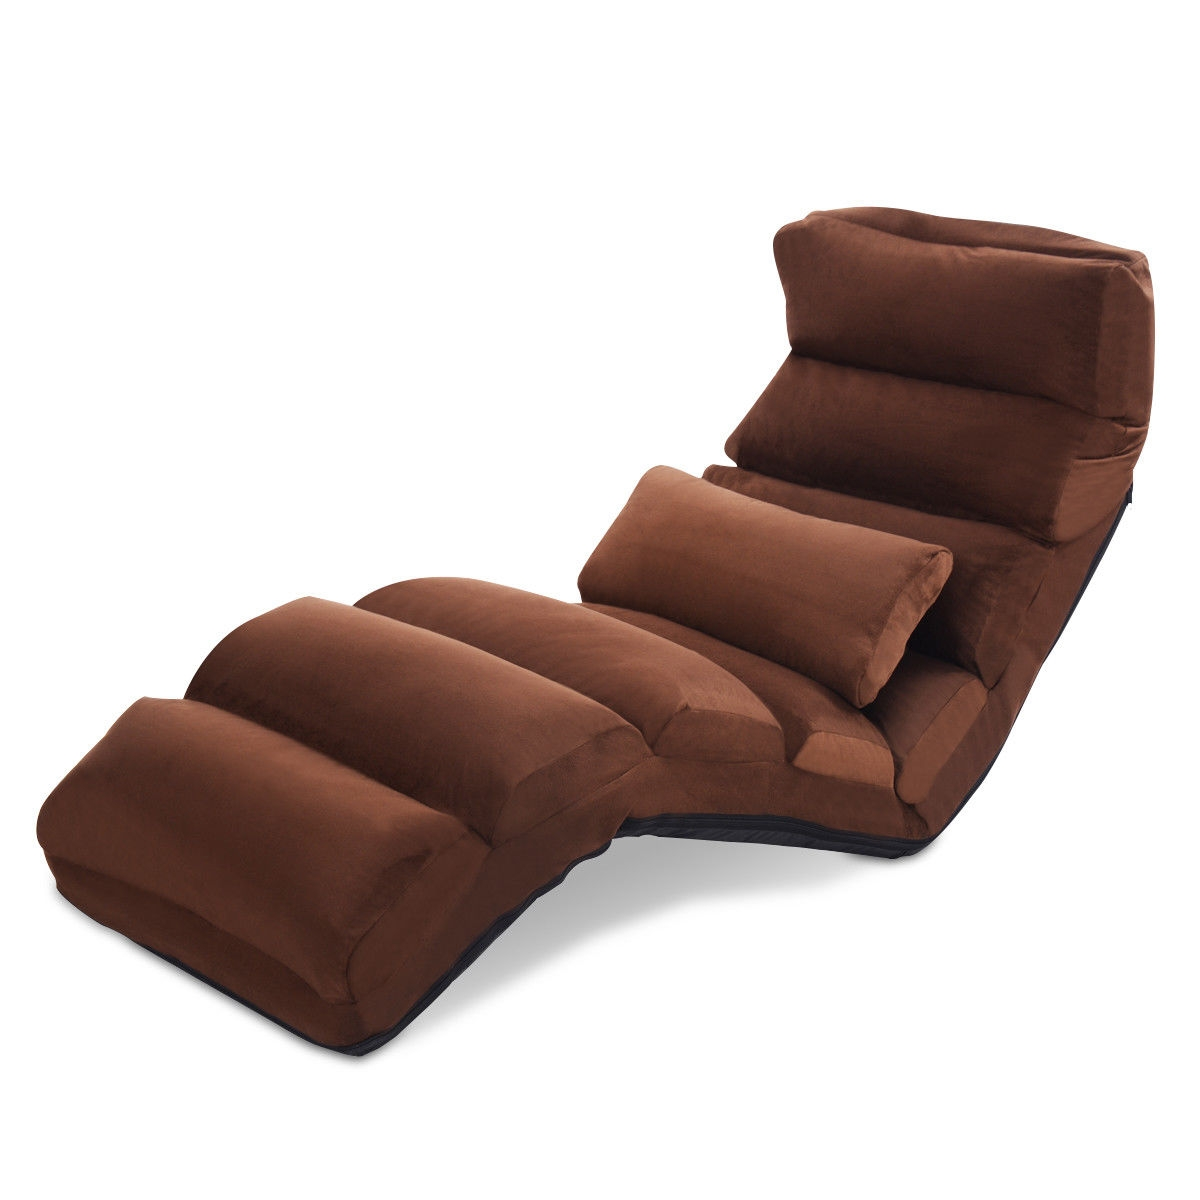 Folding Lazy Sofa Chair Stylish Sofa Couch Beds Lounge Chair W/Pillow